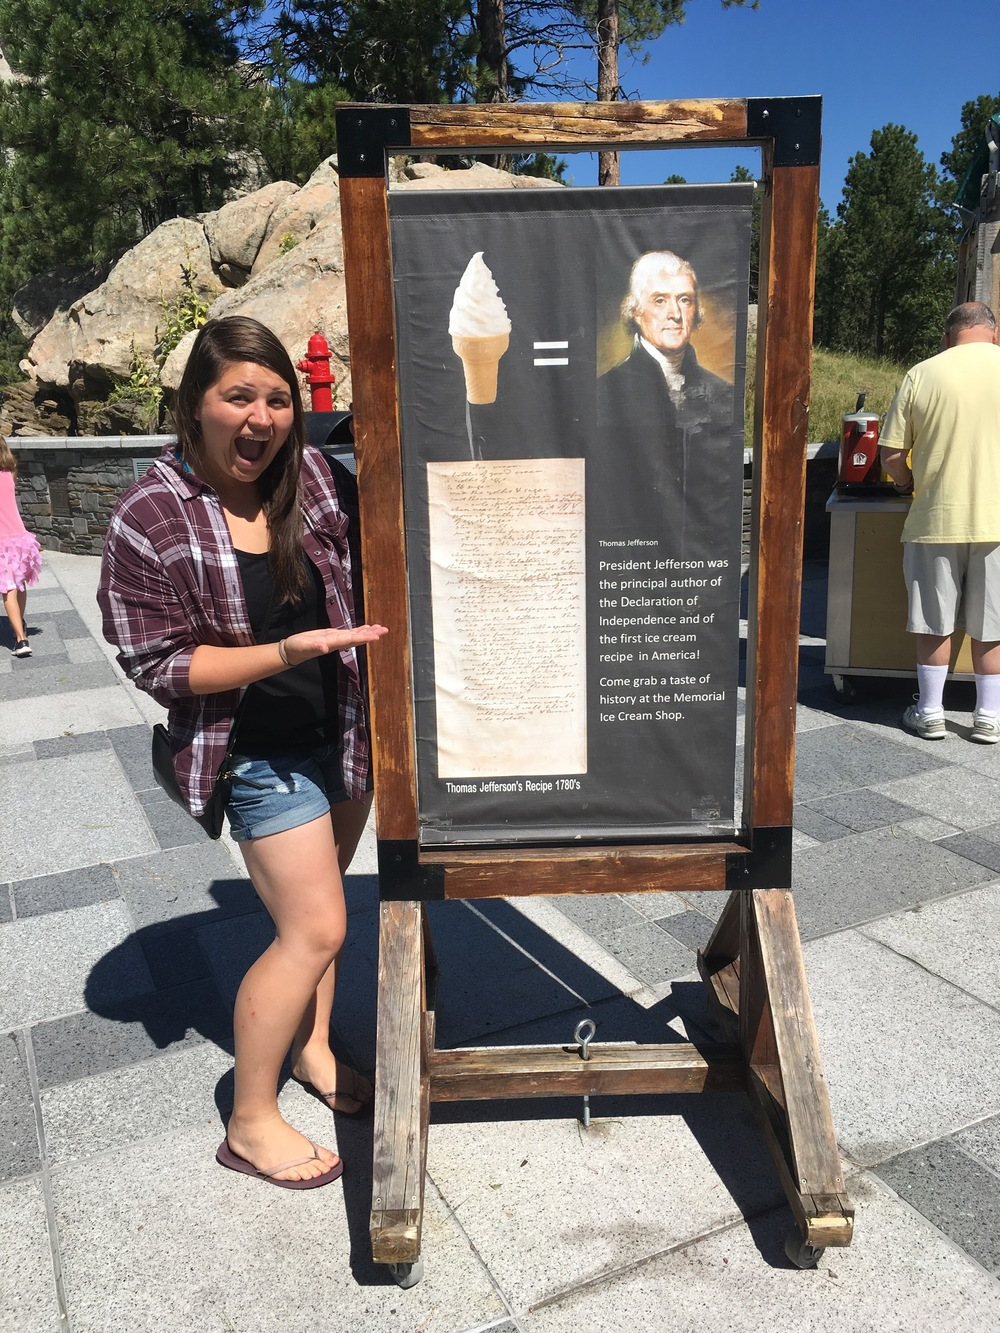 Kara poses with our favorite sign of the trip: Ice cream= Thomas Jefferson. Apparently he was the first person in America to write down a recipe for vanilla ice cream?